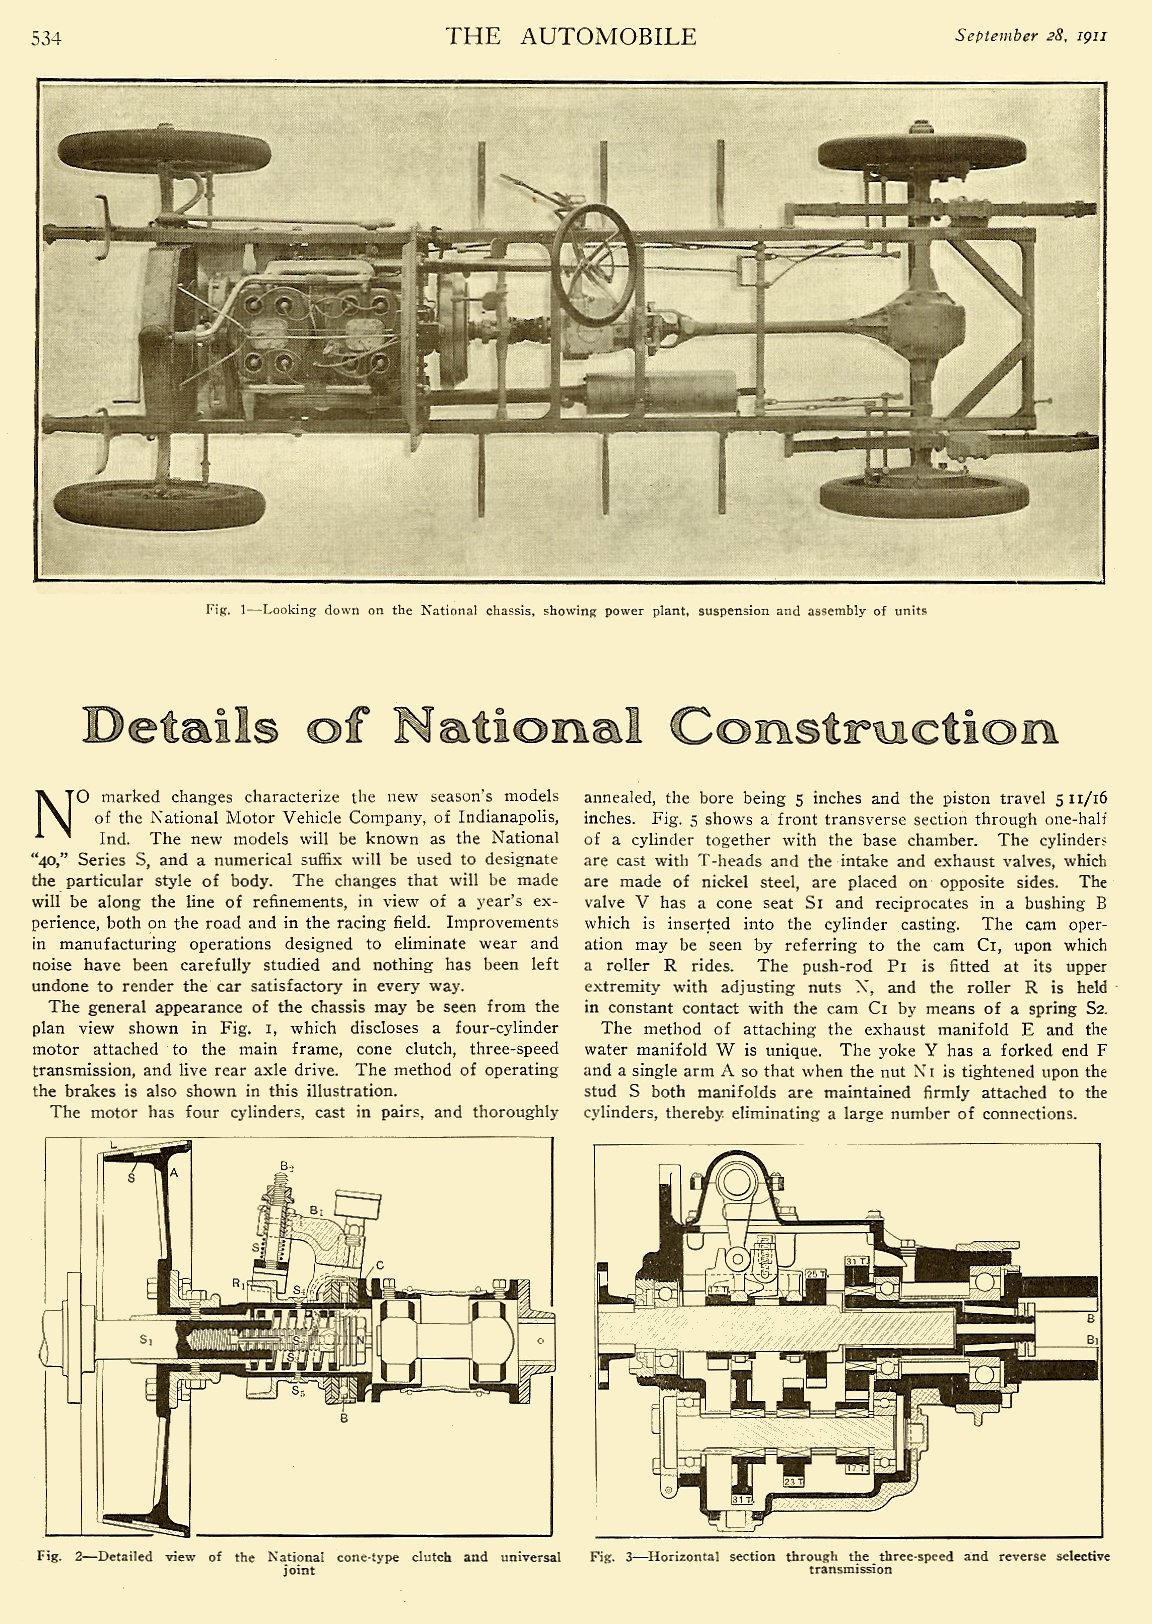 """1911 9 28 National """"Details of National Construction"""" THE AUTOMOBILE Vol. 25 No. 13 September 28, 1911 9″x12″ page 534"""